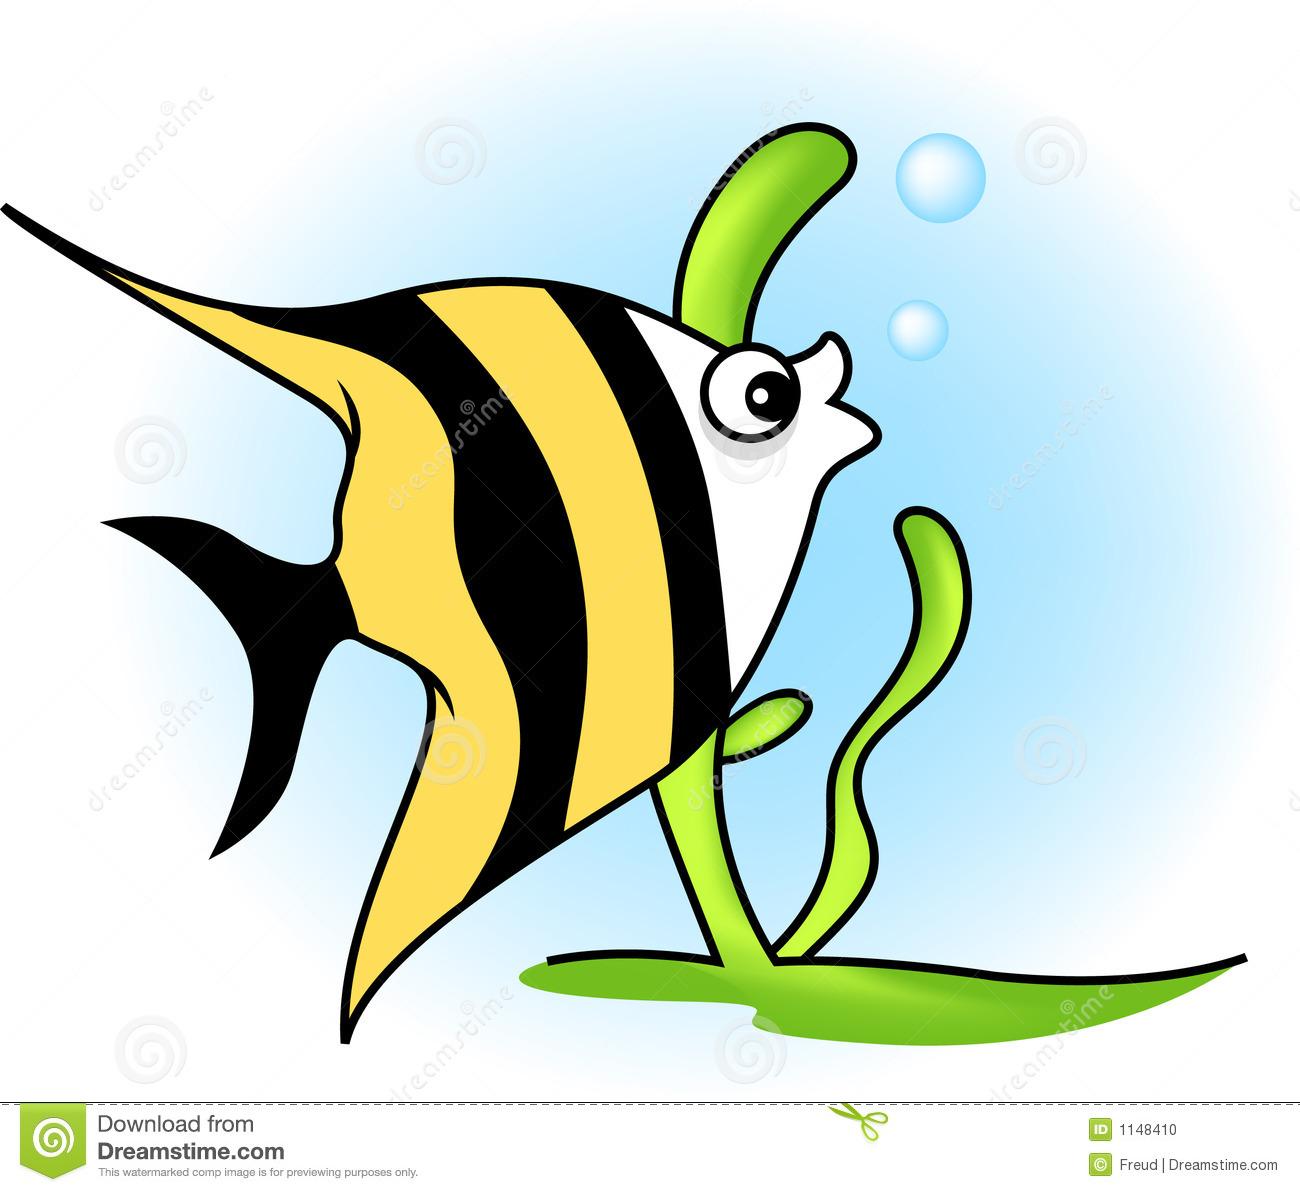 Angelfish clipart #7, Download drawings